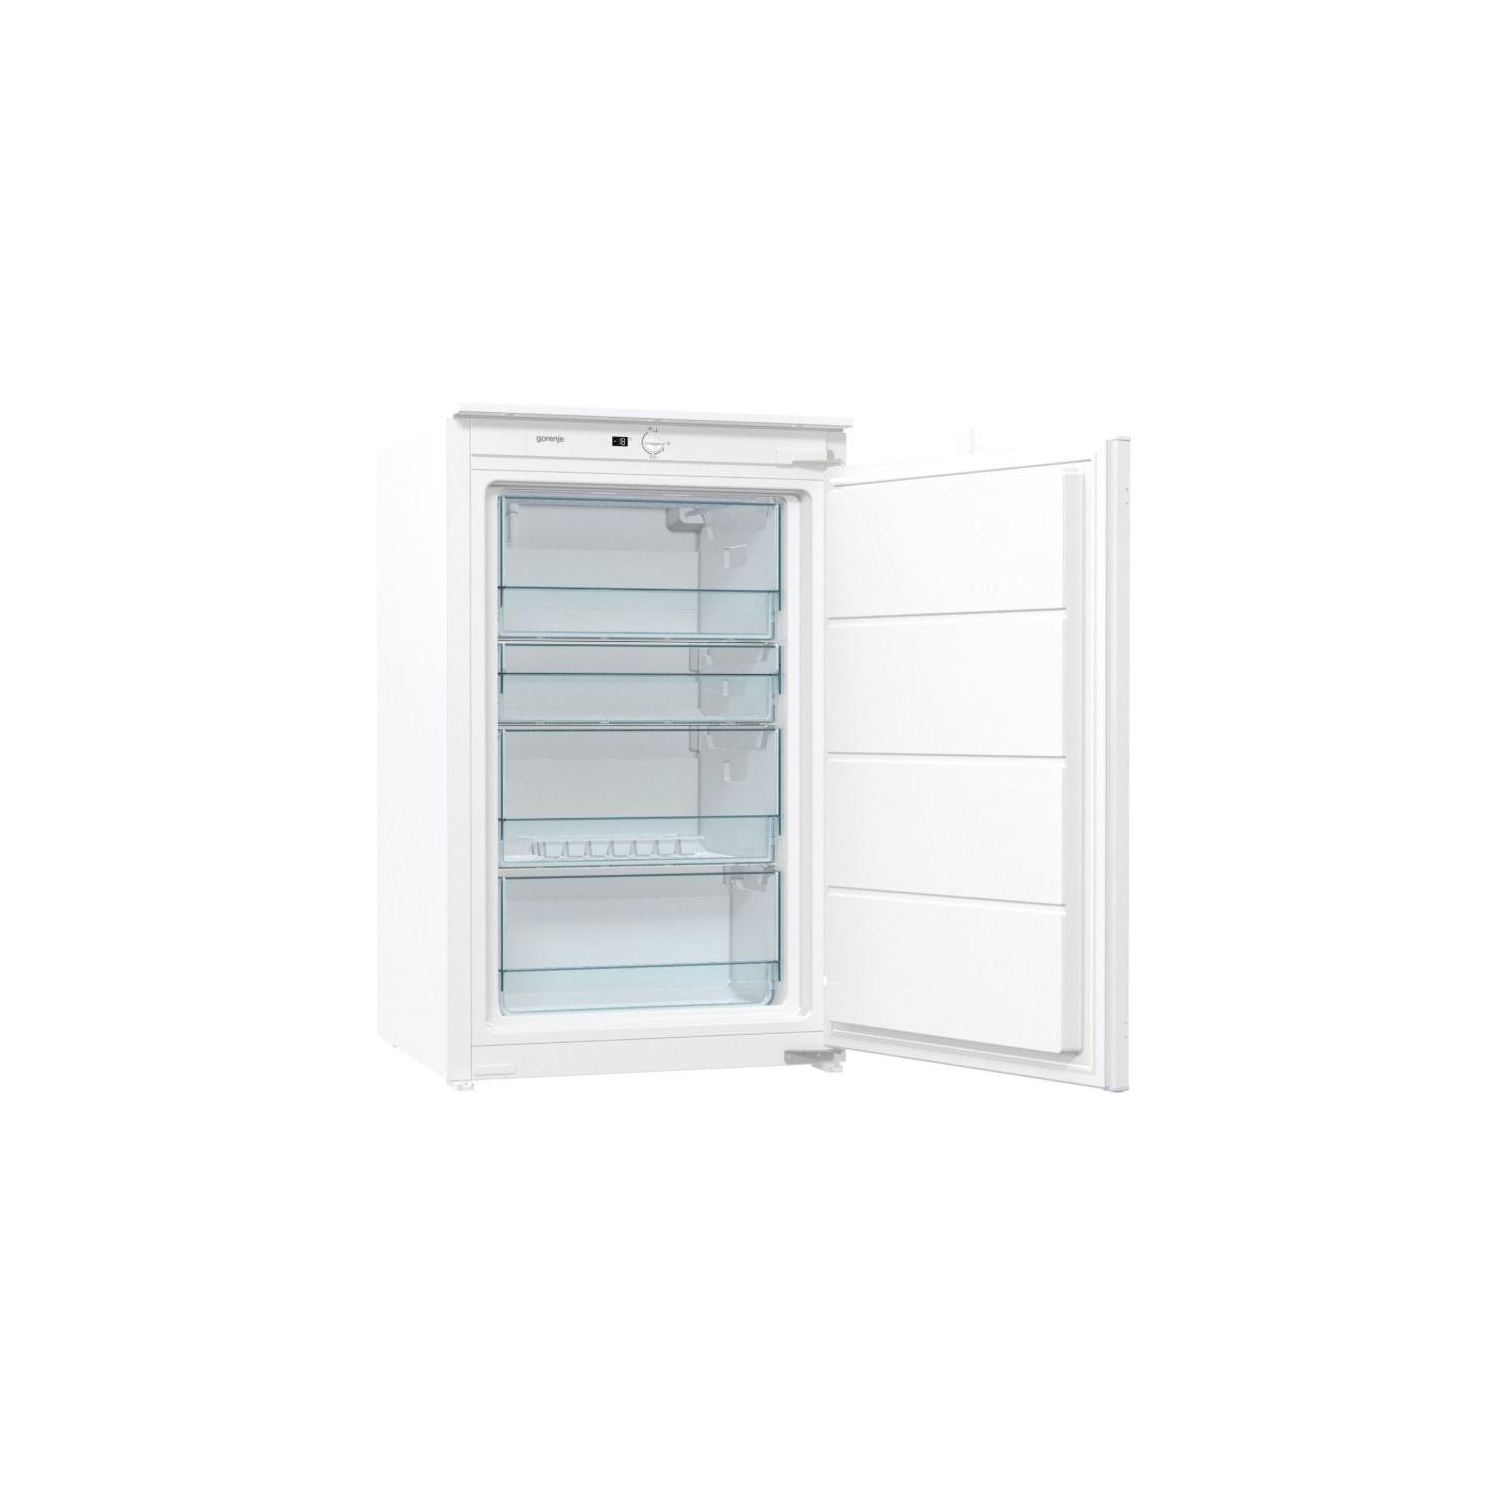 Gorenje 55cm Built-In Freezer - A+ Rated - 0